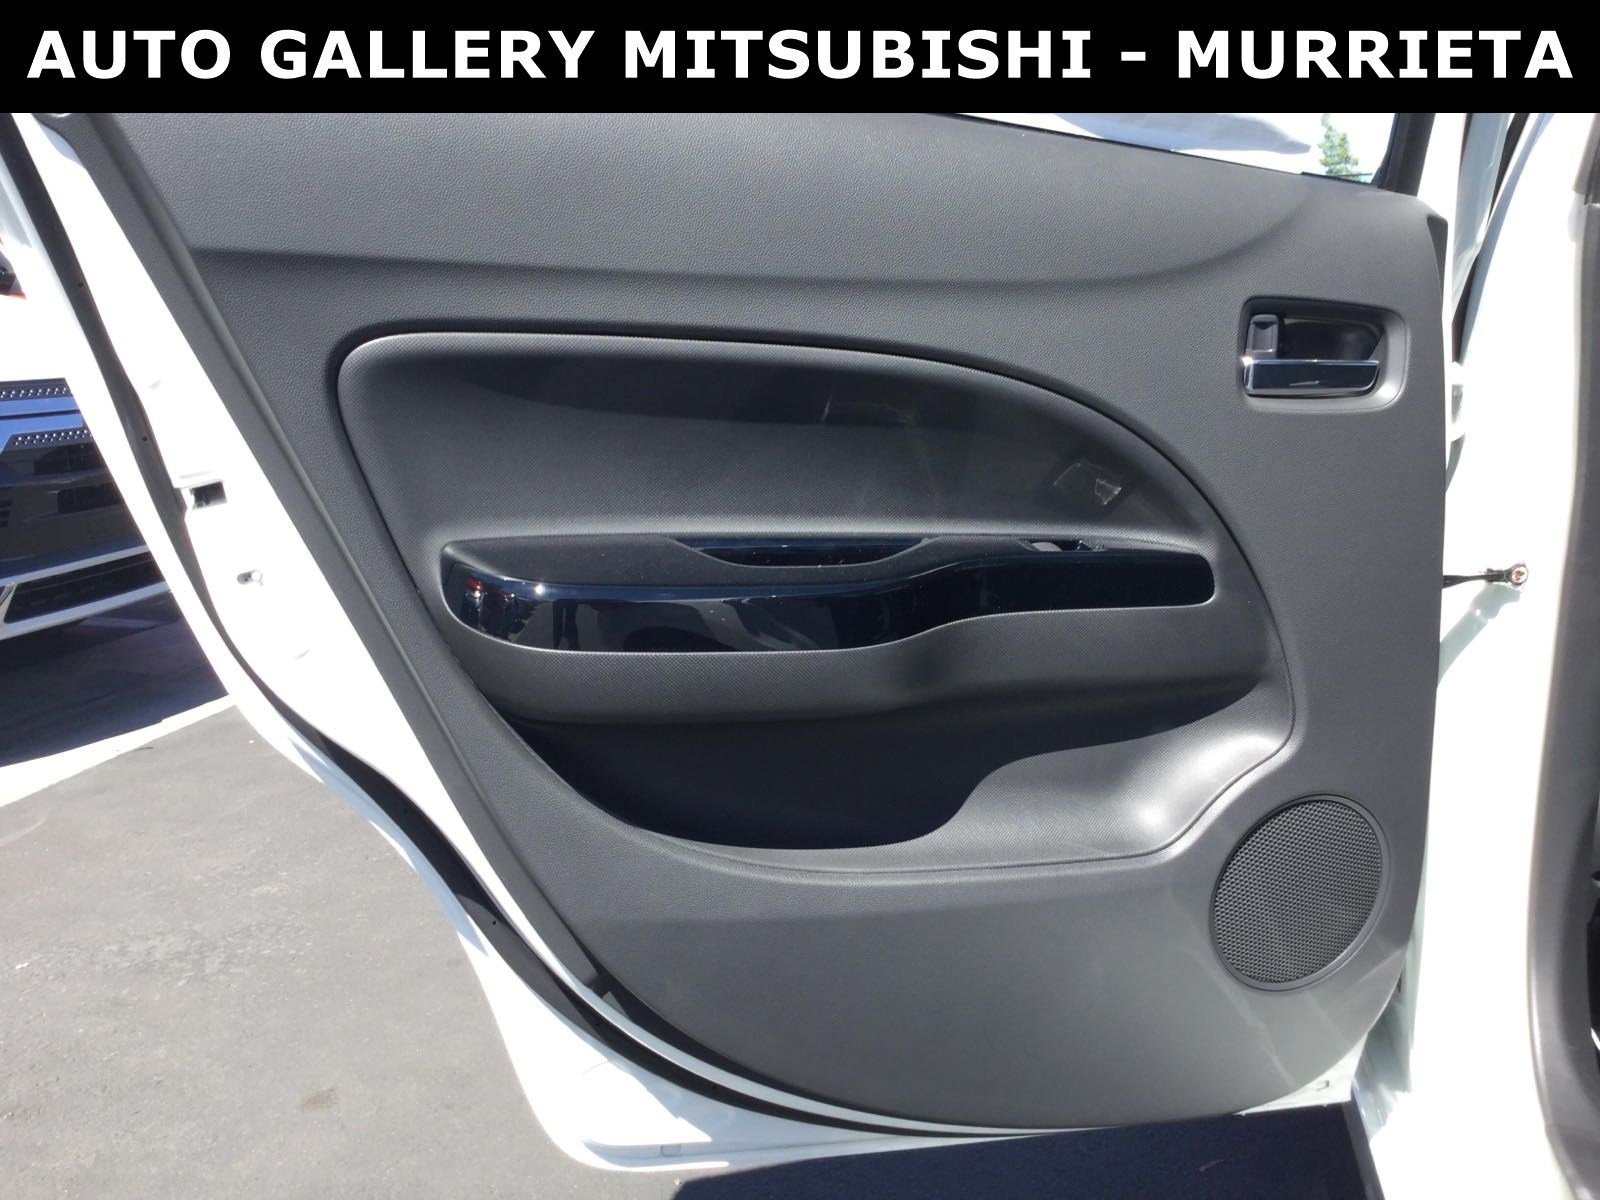 New 2019 Mitsubishi Mirage G4 SE